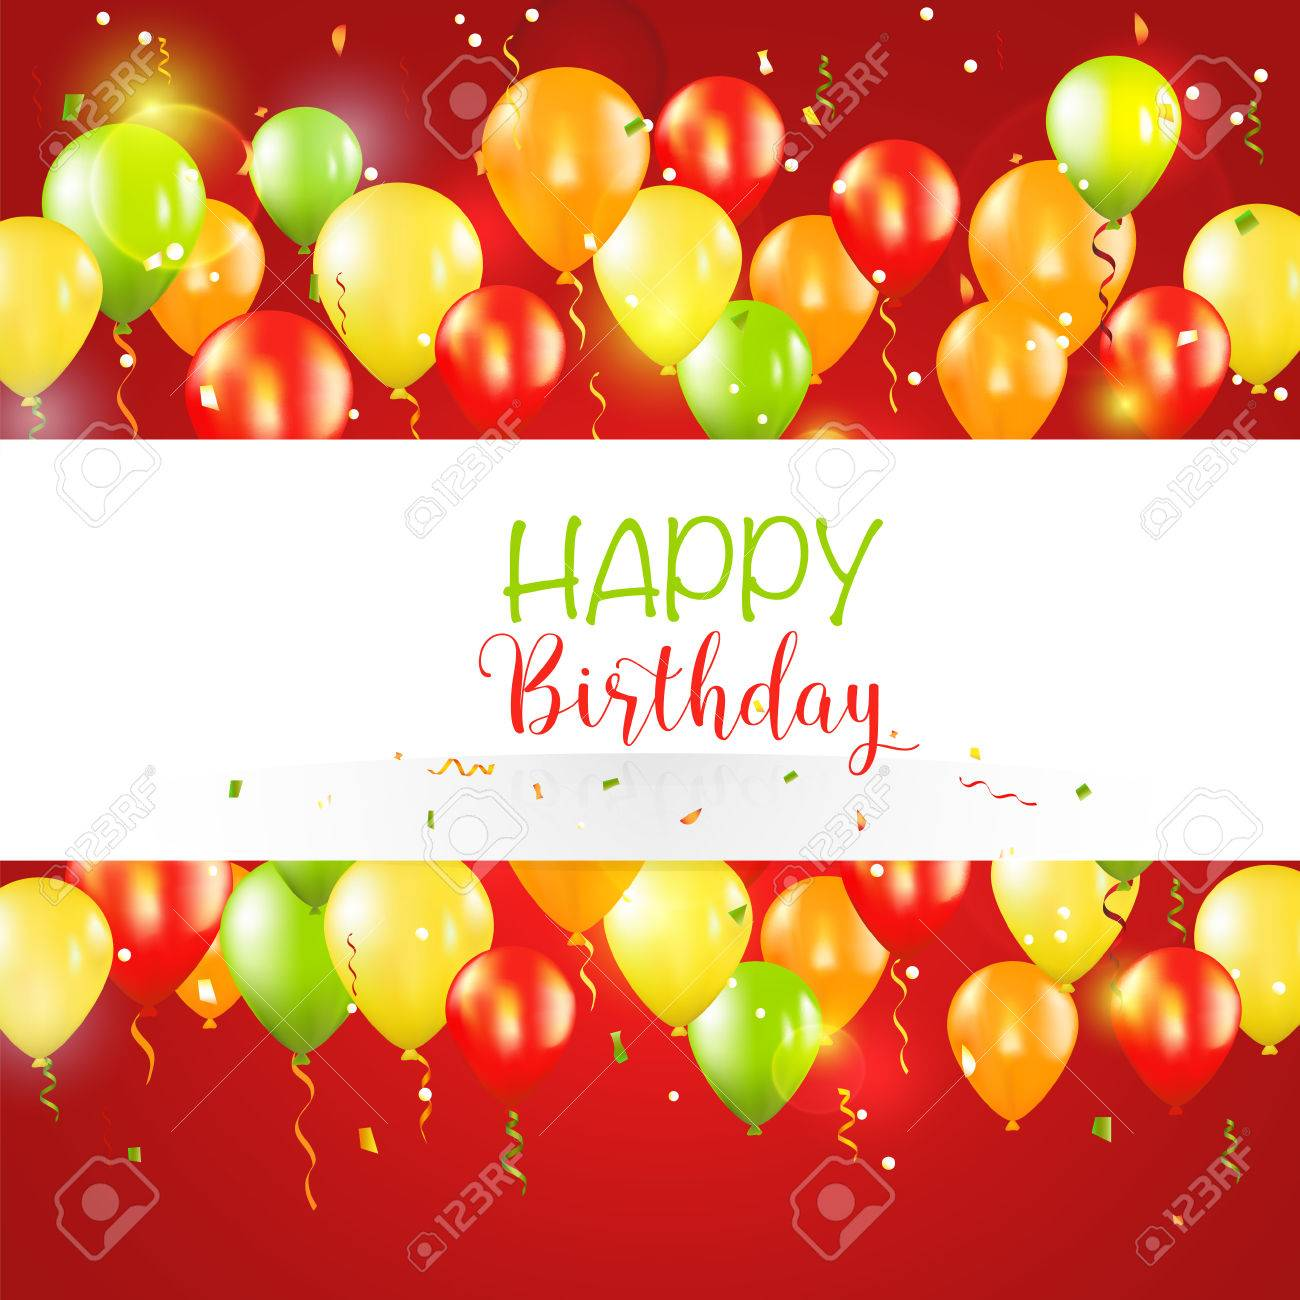 Happy Birthday And Party Balloon Invitation Card - With Place ...